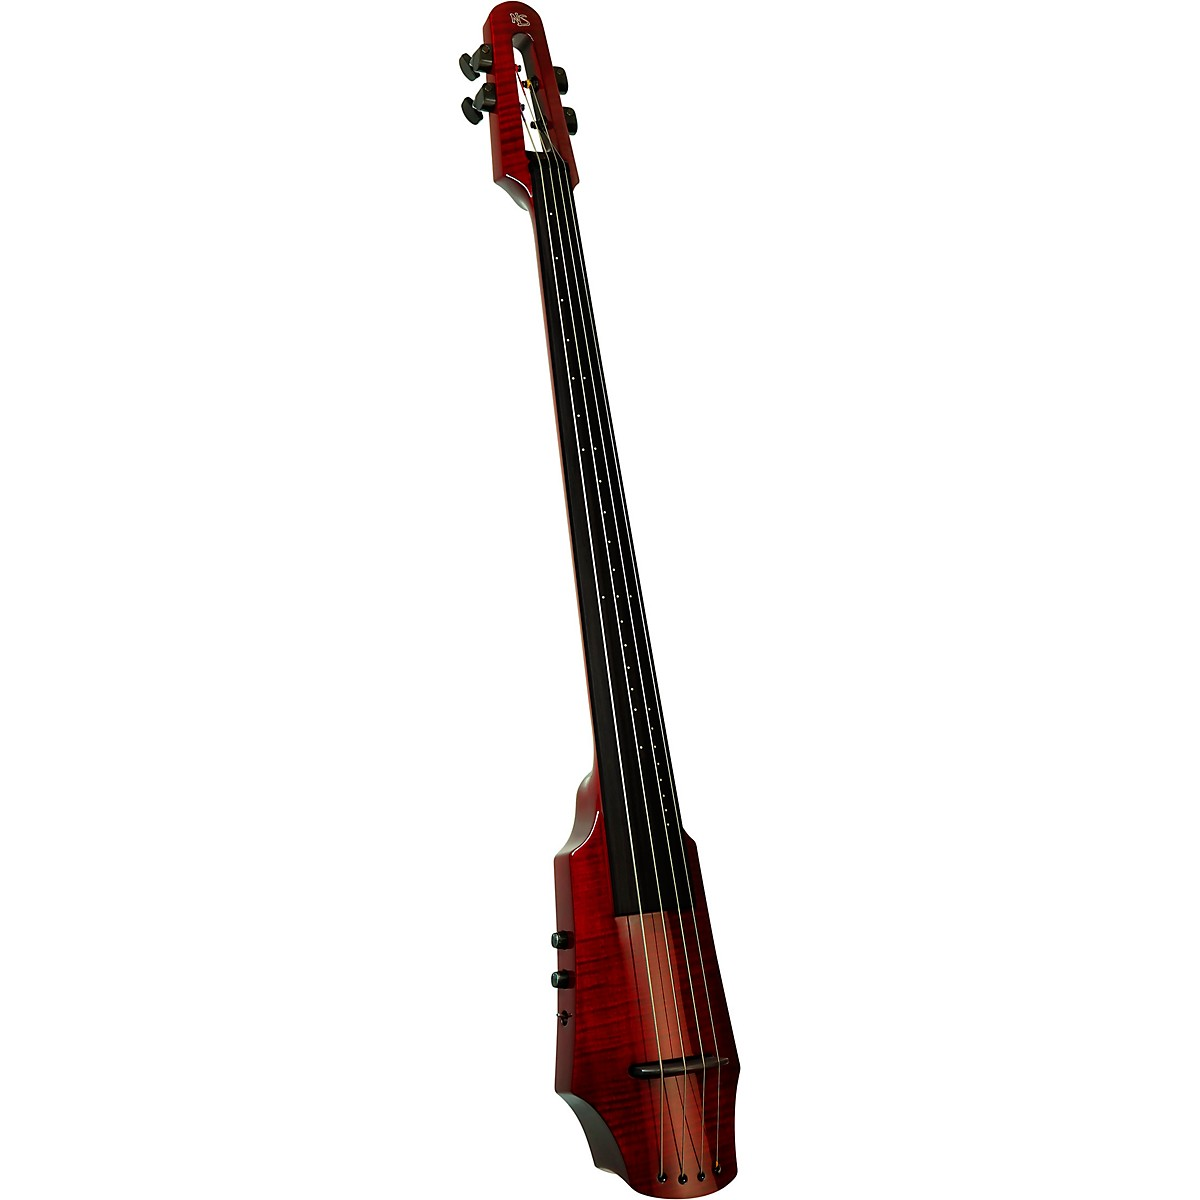 NS Design WAV4c Series 4-String Electric Cello